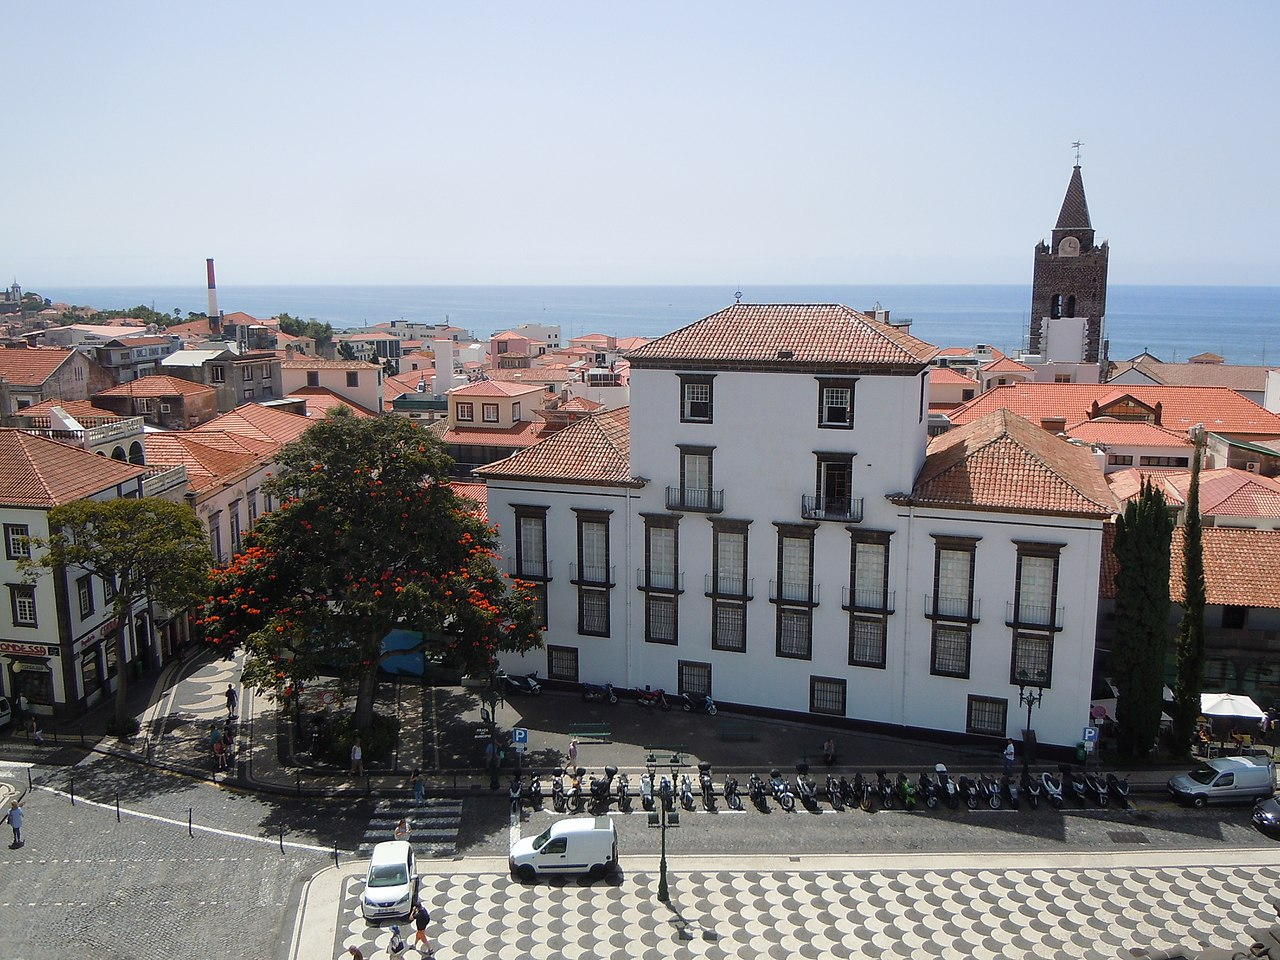 Musee d'art funchal